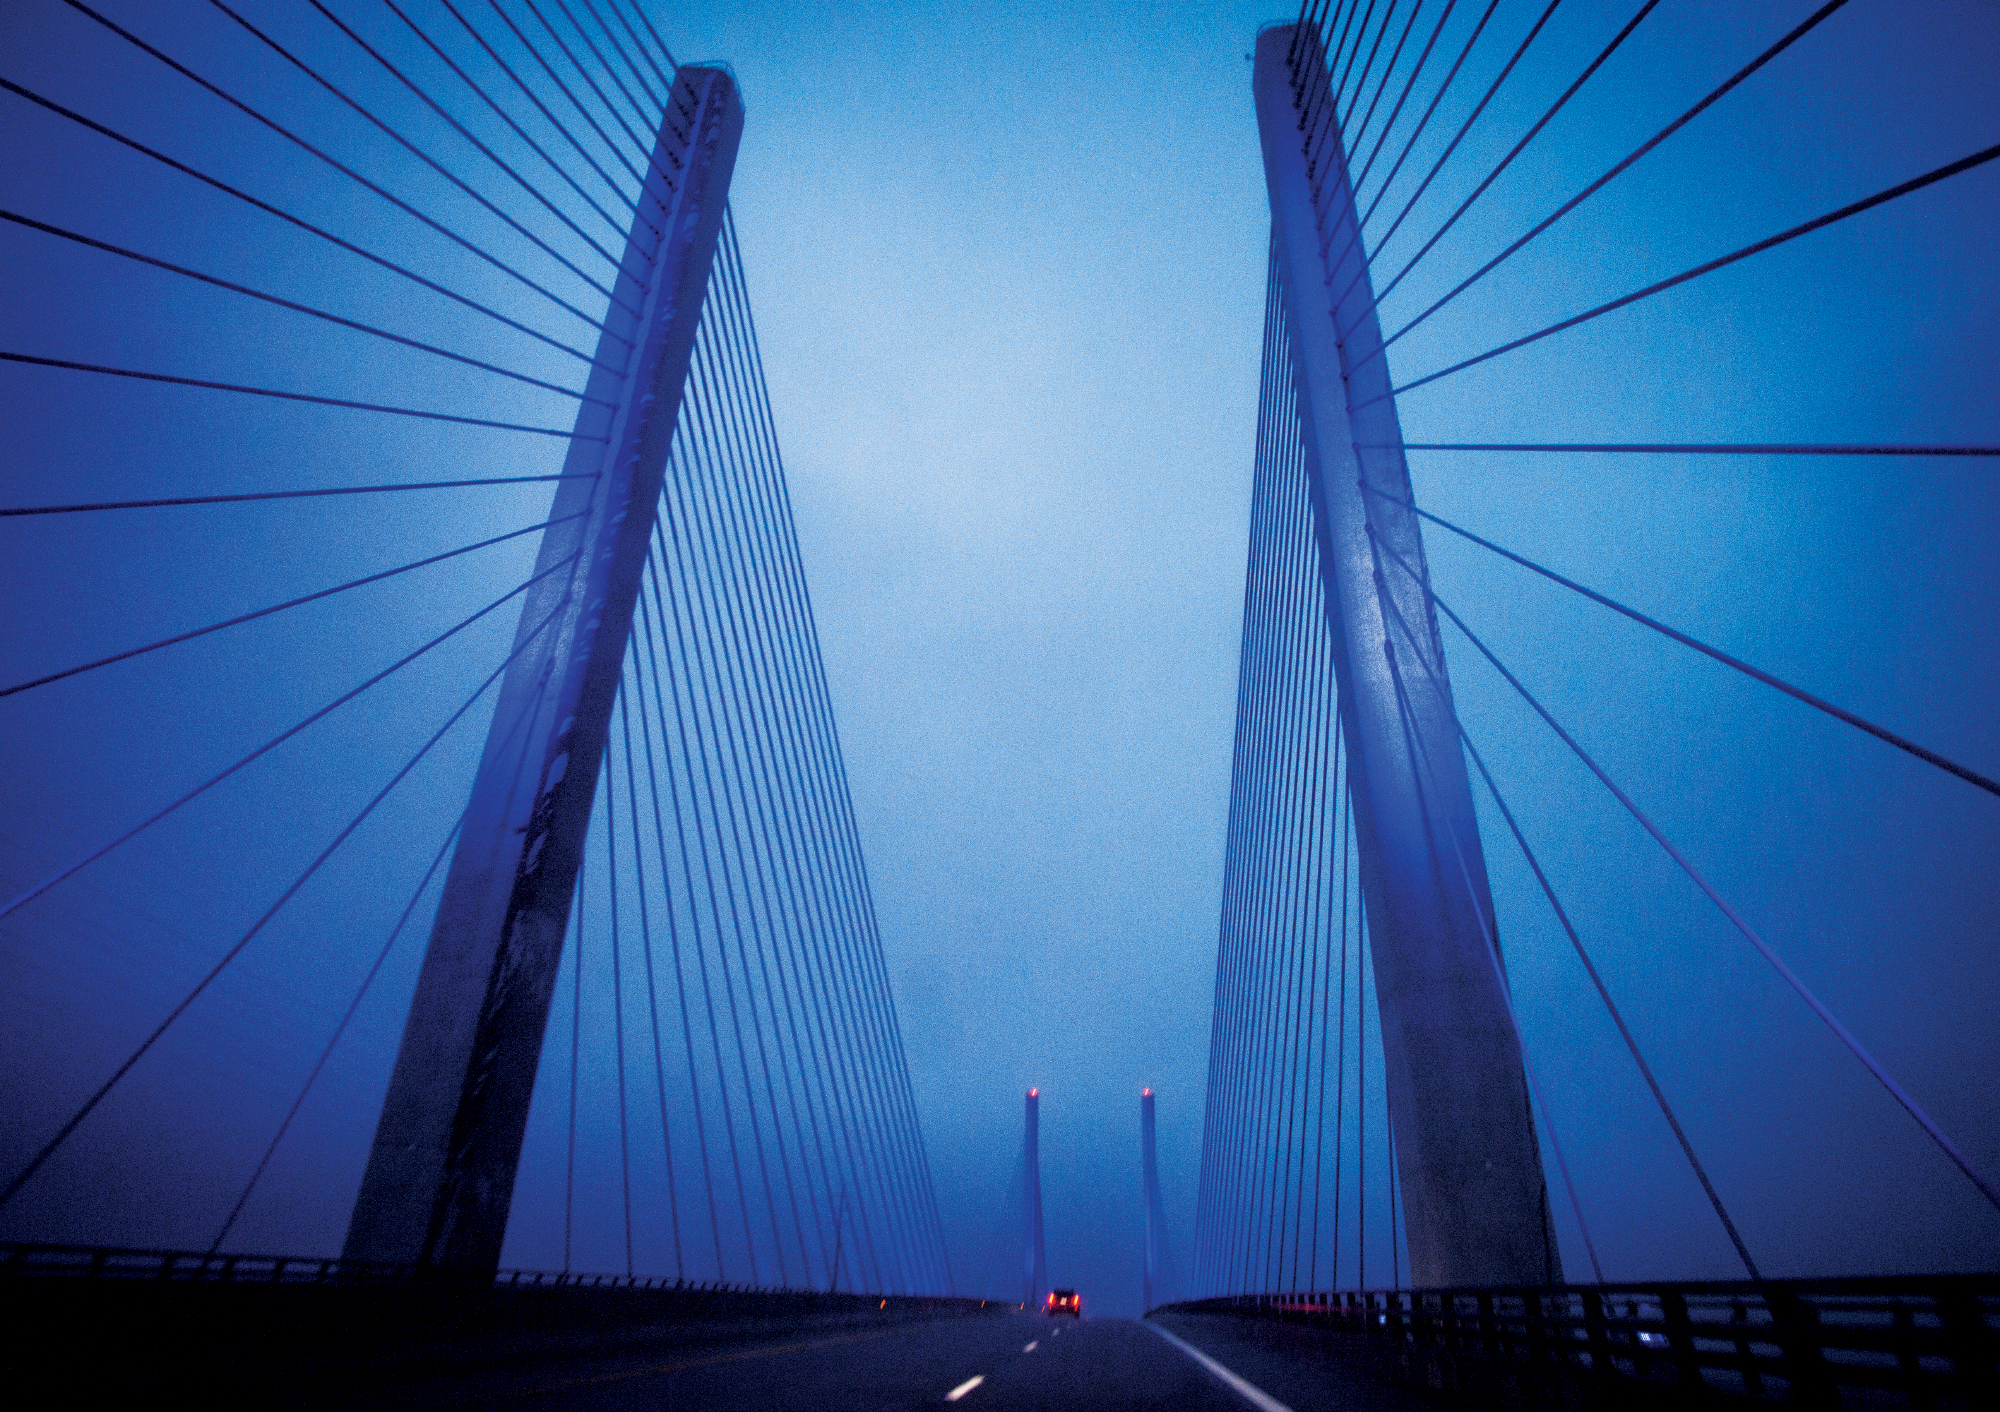 Photograph of a bright blue bridge with prominent suspension chords taken in Maryland.